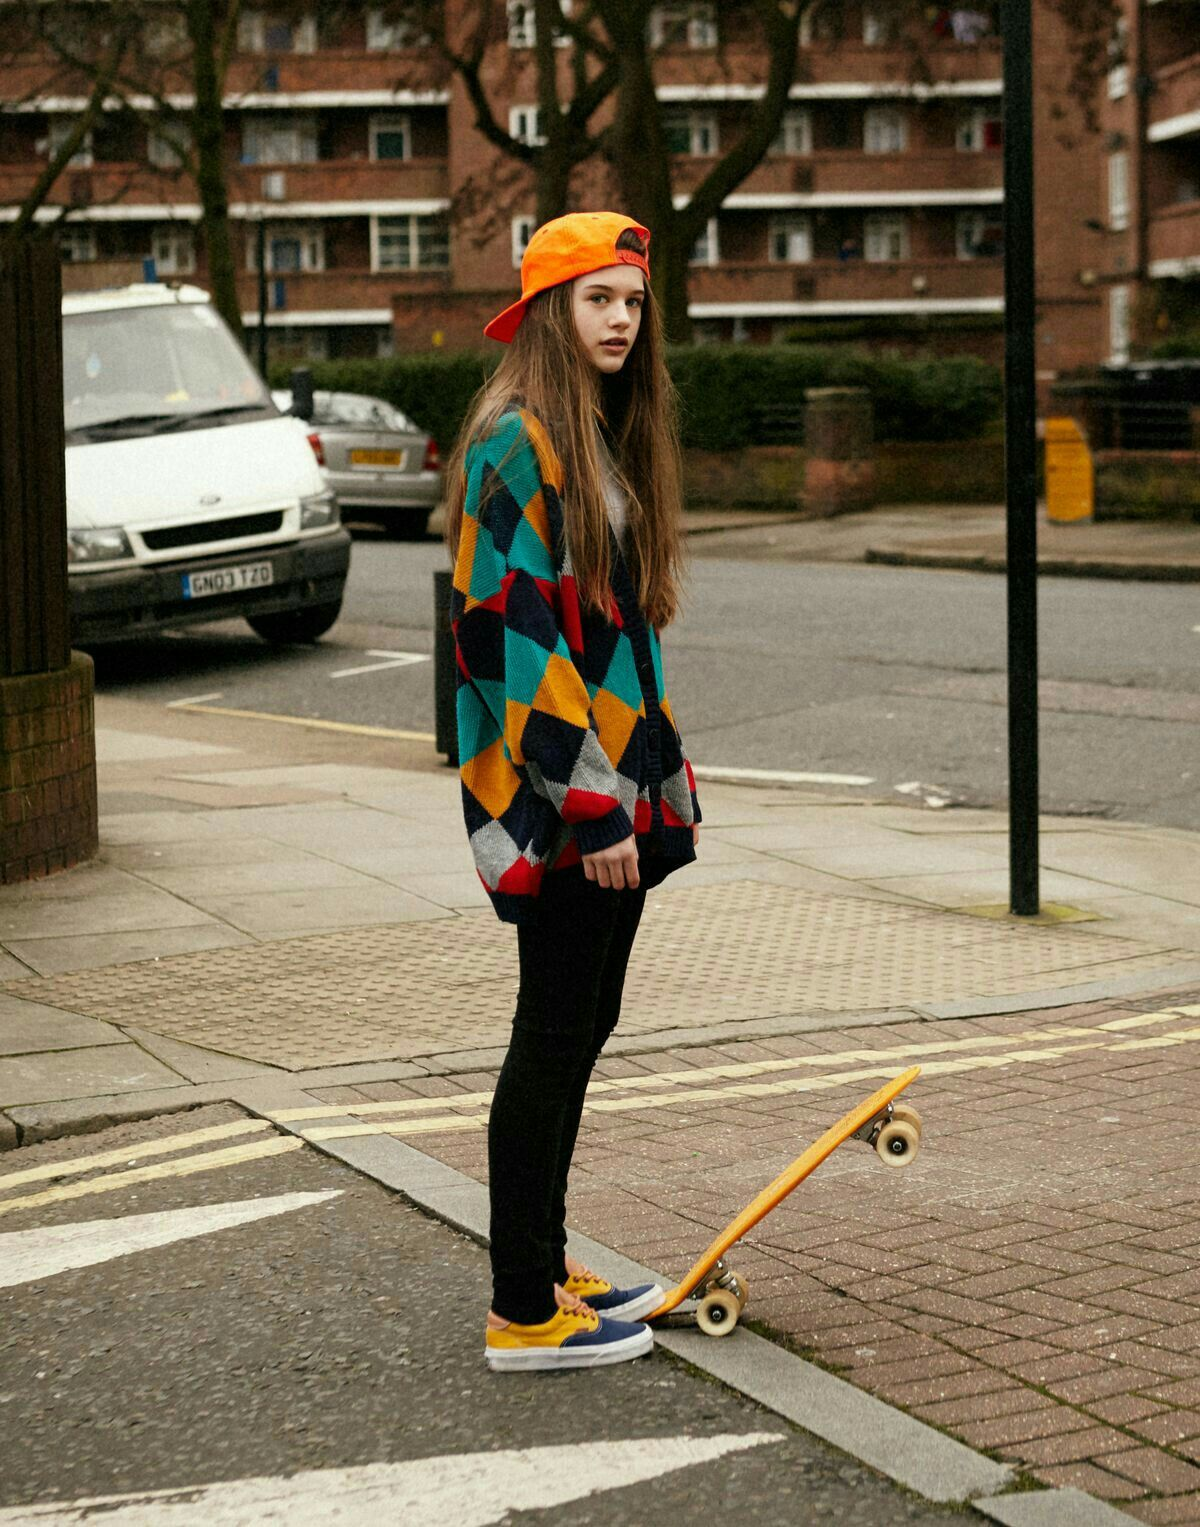 Skater Look Also I Love That Sweater Aesthetic Outfits Pinterest Clothes Grunge And